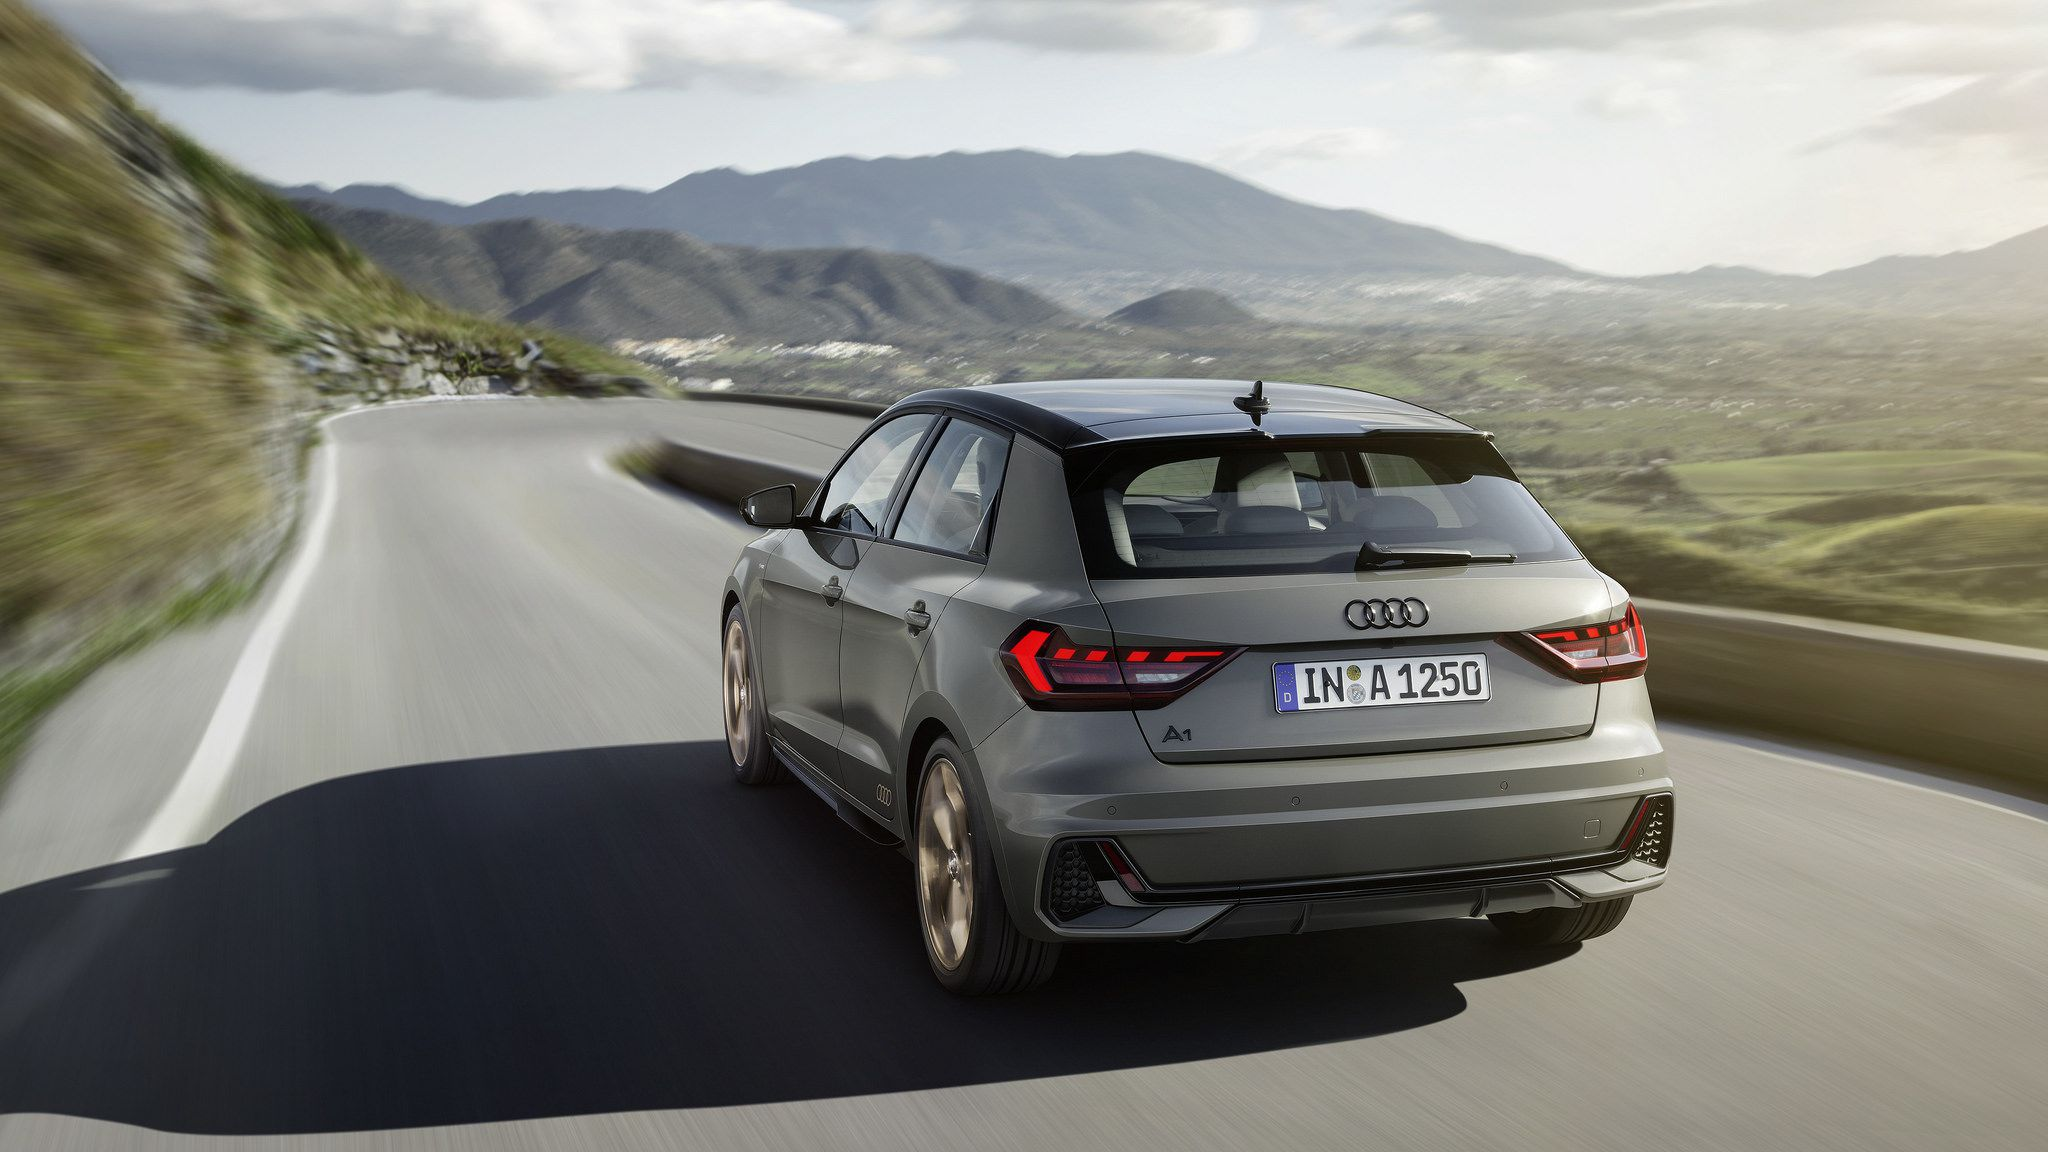 2019 gray Audi A1 Sportback at speed